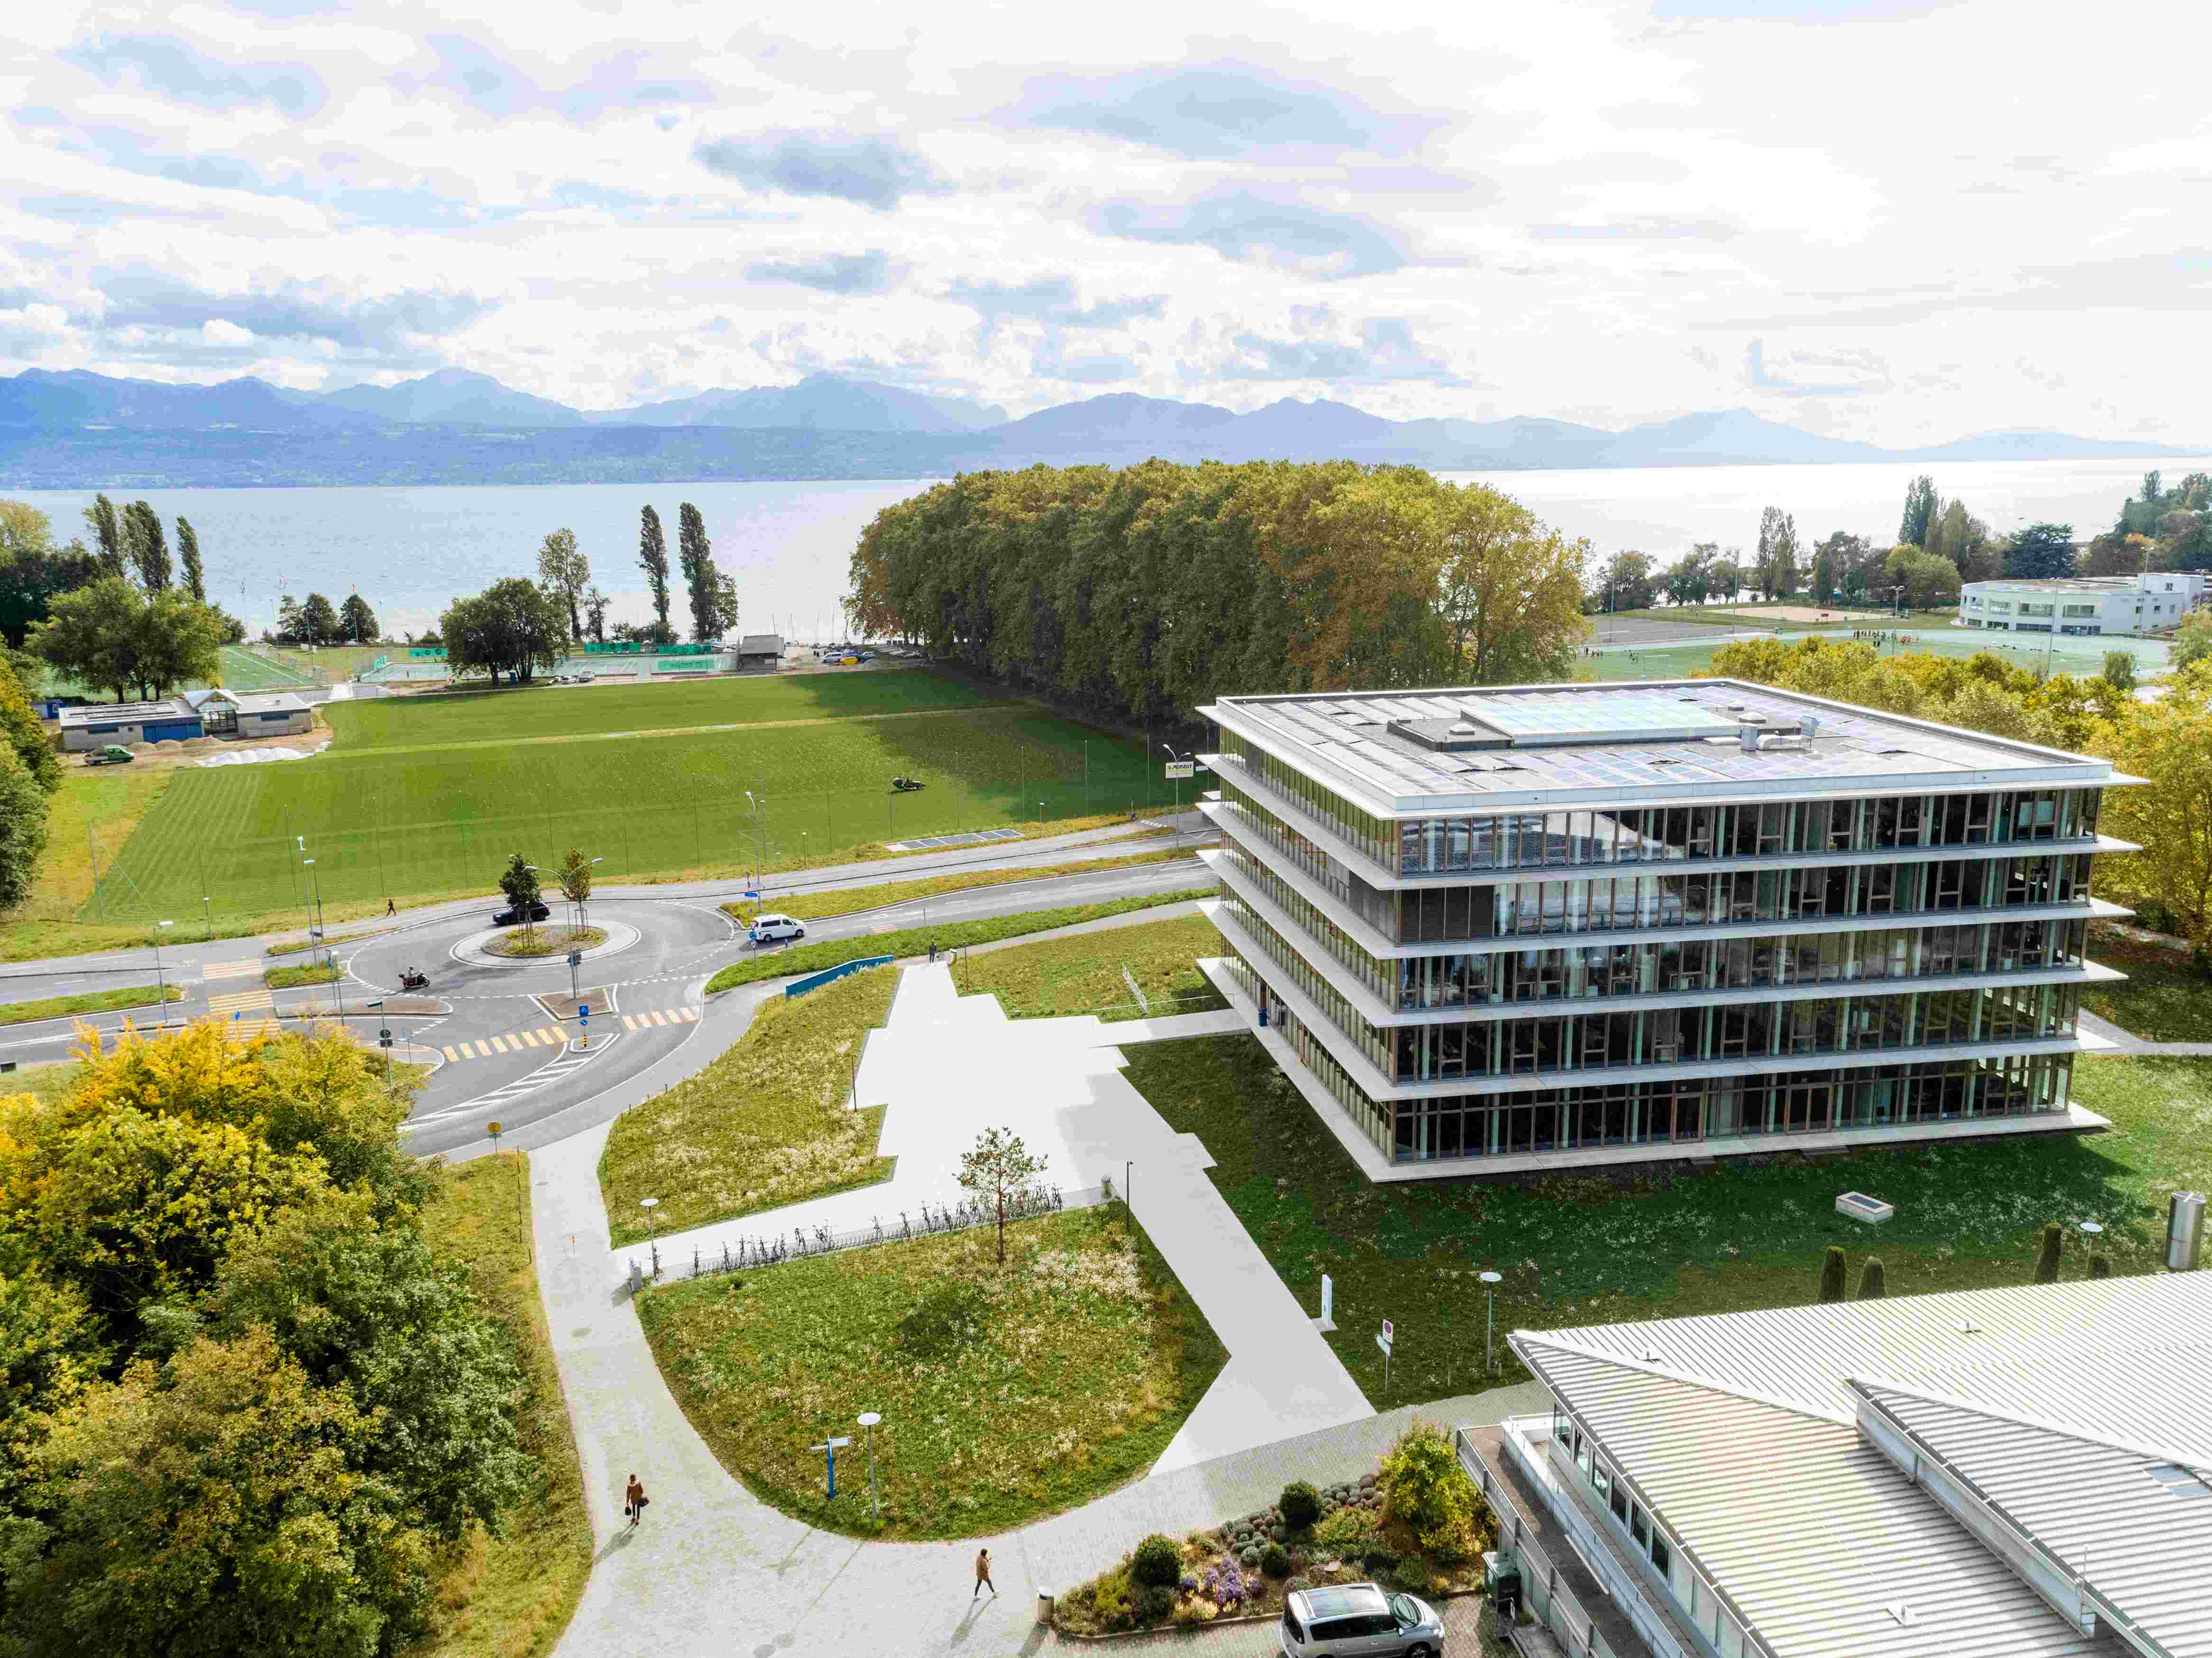 Logo HEC Lausanne, the Faculty of Business and Economics of the University of Lausanne